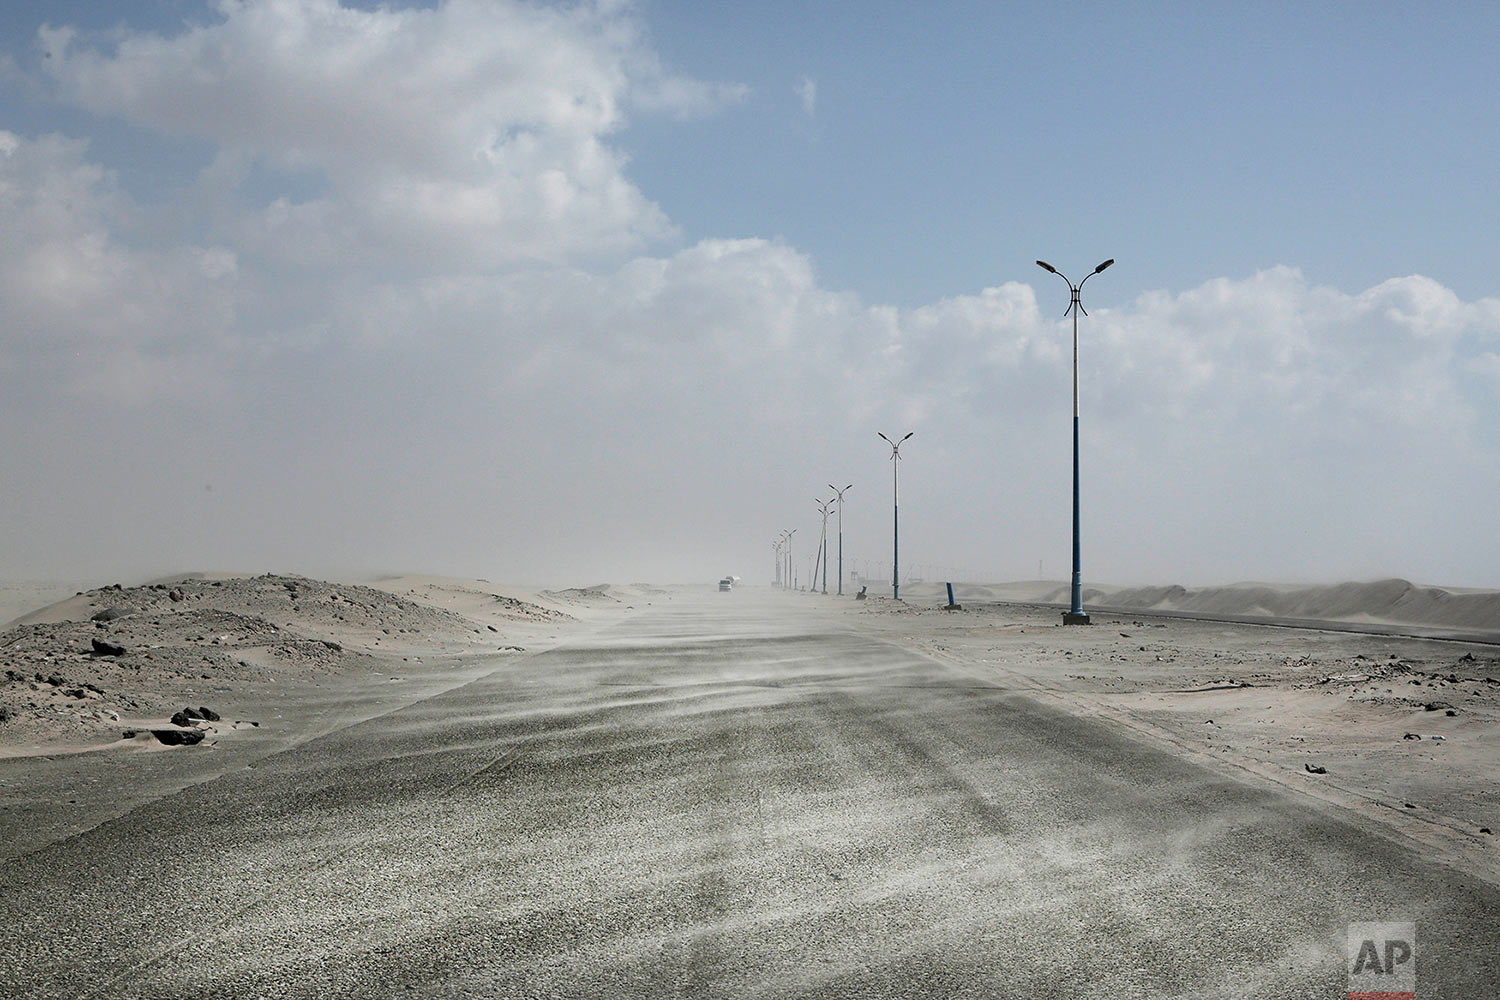 Sand drifting over an empty highway from Abyan to Aden in Yemen. (AP Photo/Nariman El-Mofty)